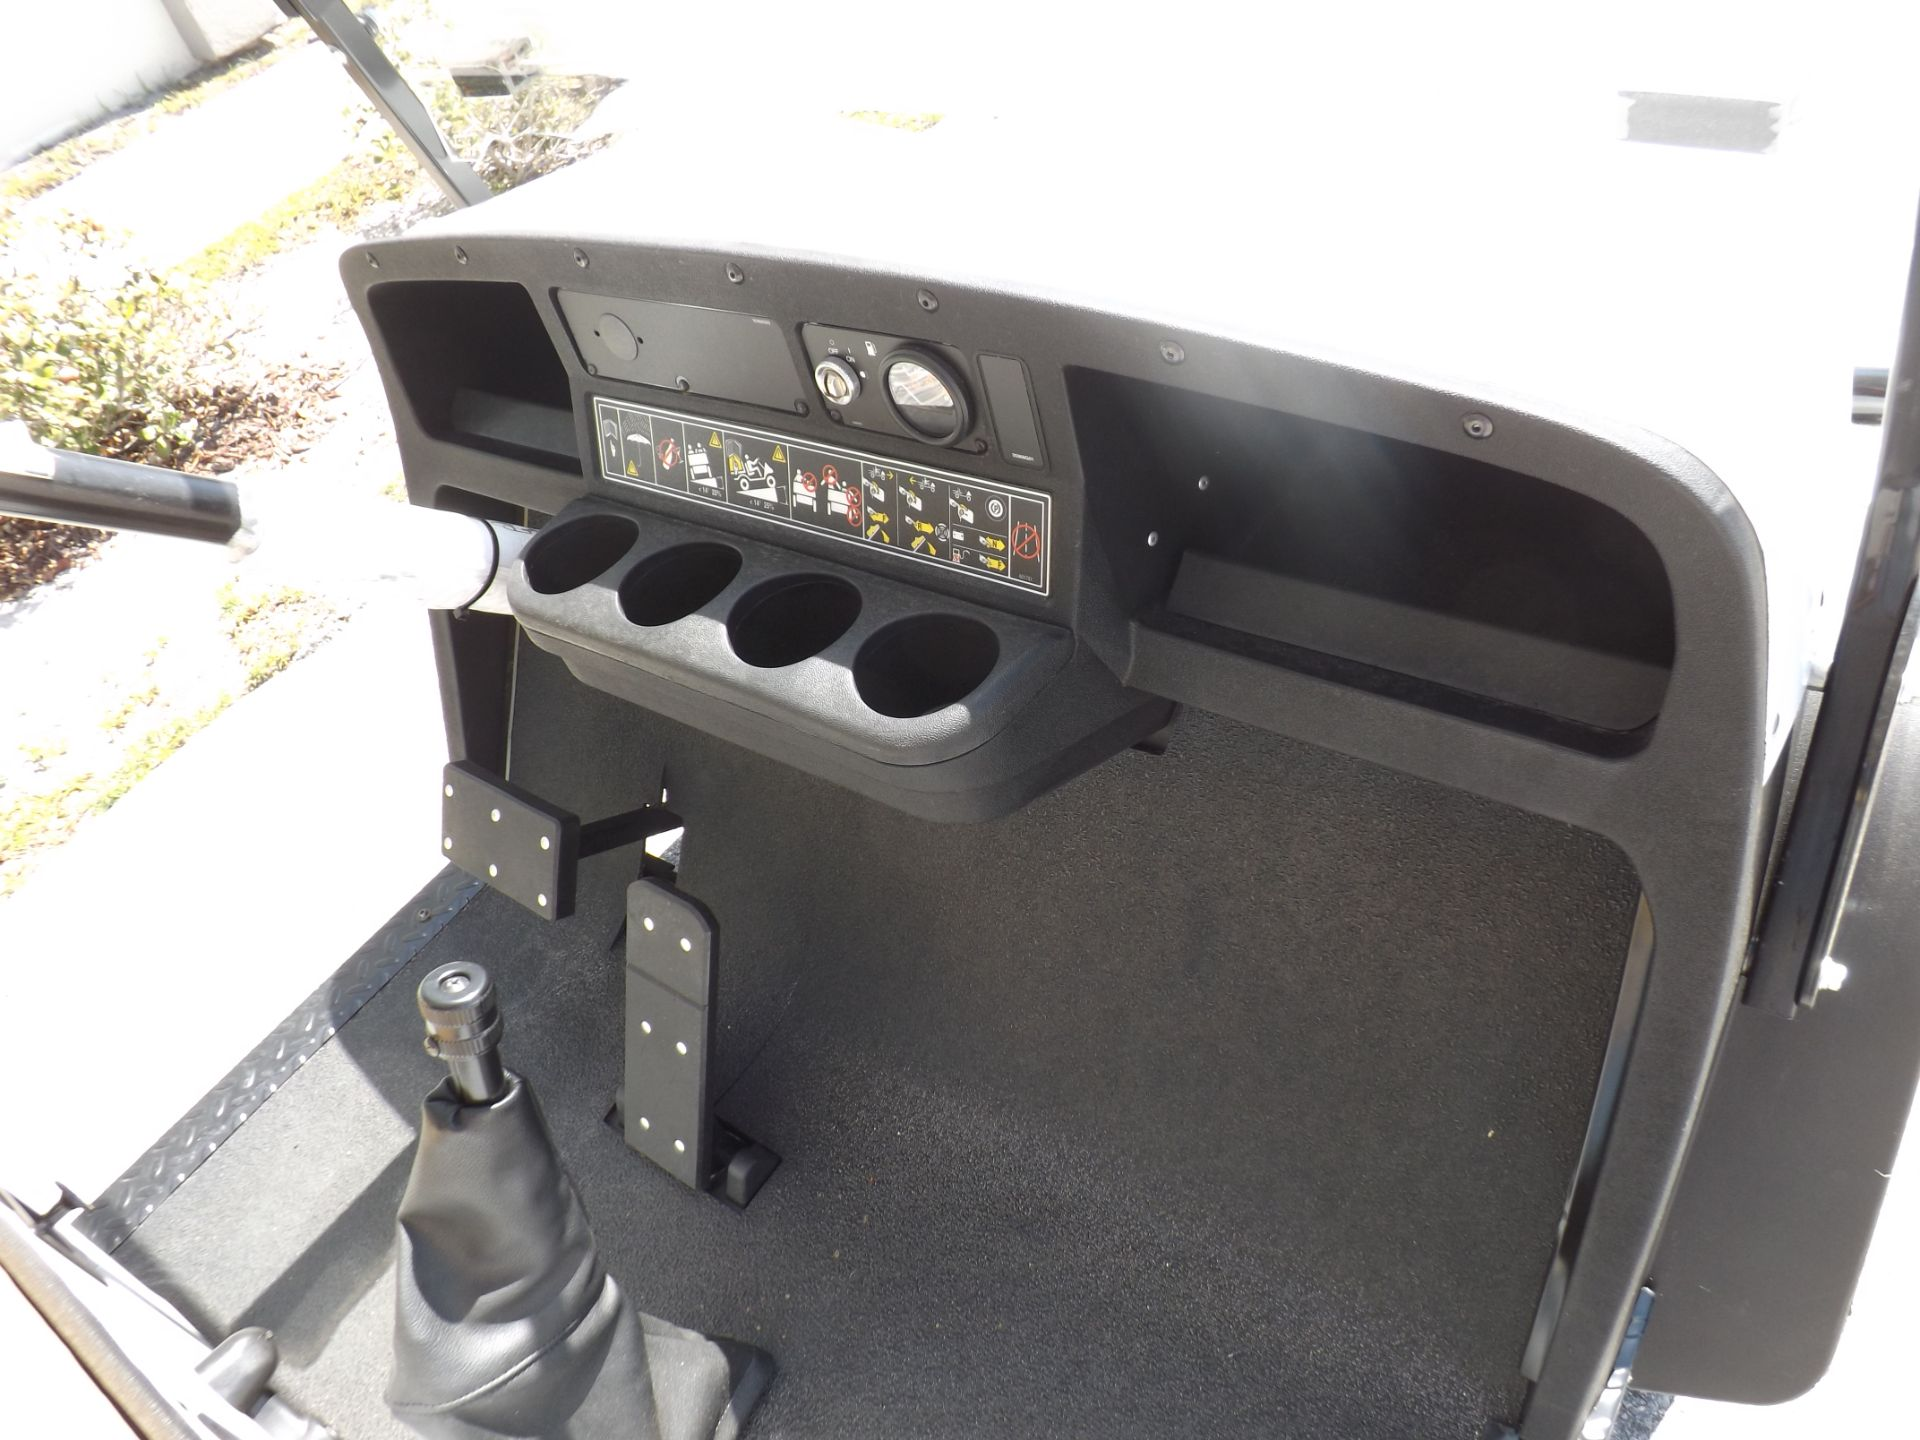 2019 Cushman Shuttle 8 EFI Gas in Lakeland, Florida - Photo 8